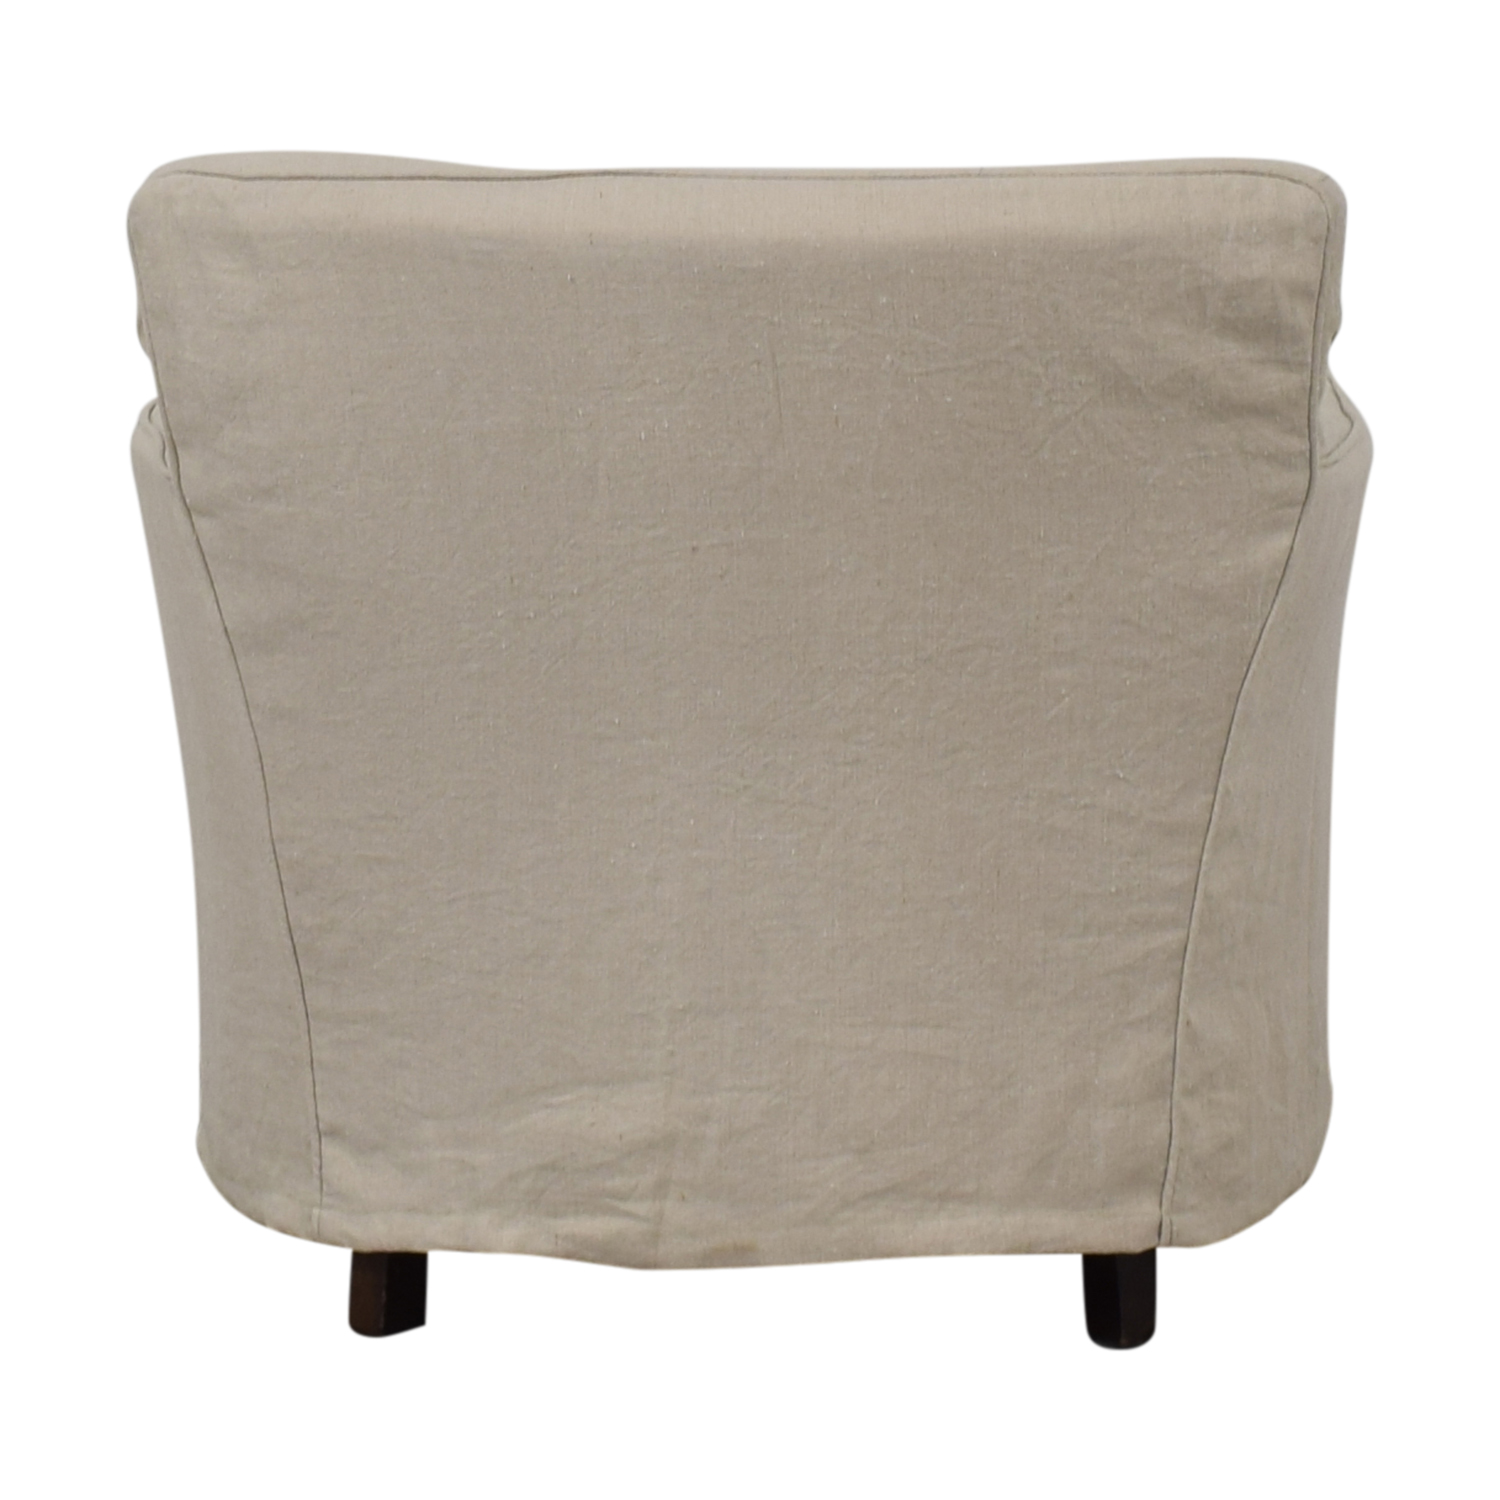 buy Crate & Barrel Linen Slipcovered Armchair Crate & Barrel Chairs